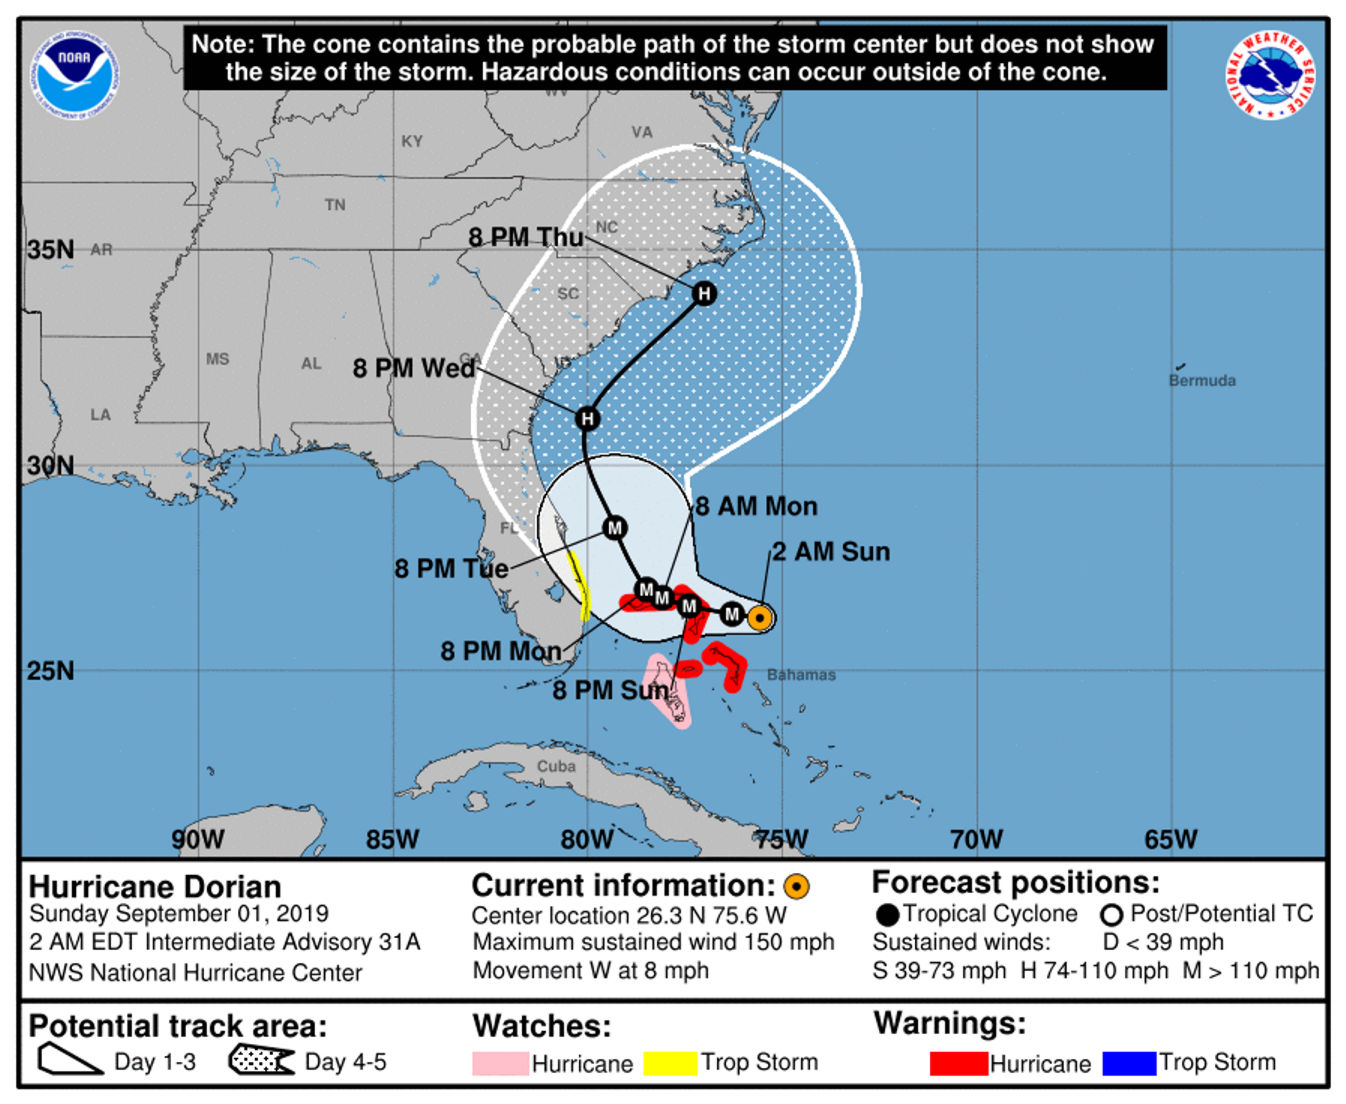 NHC Dorian 5 day forecast at 2am on 9/1/2019